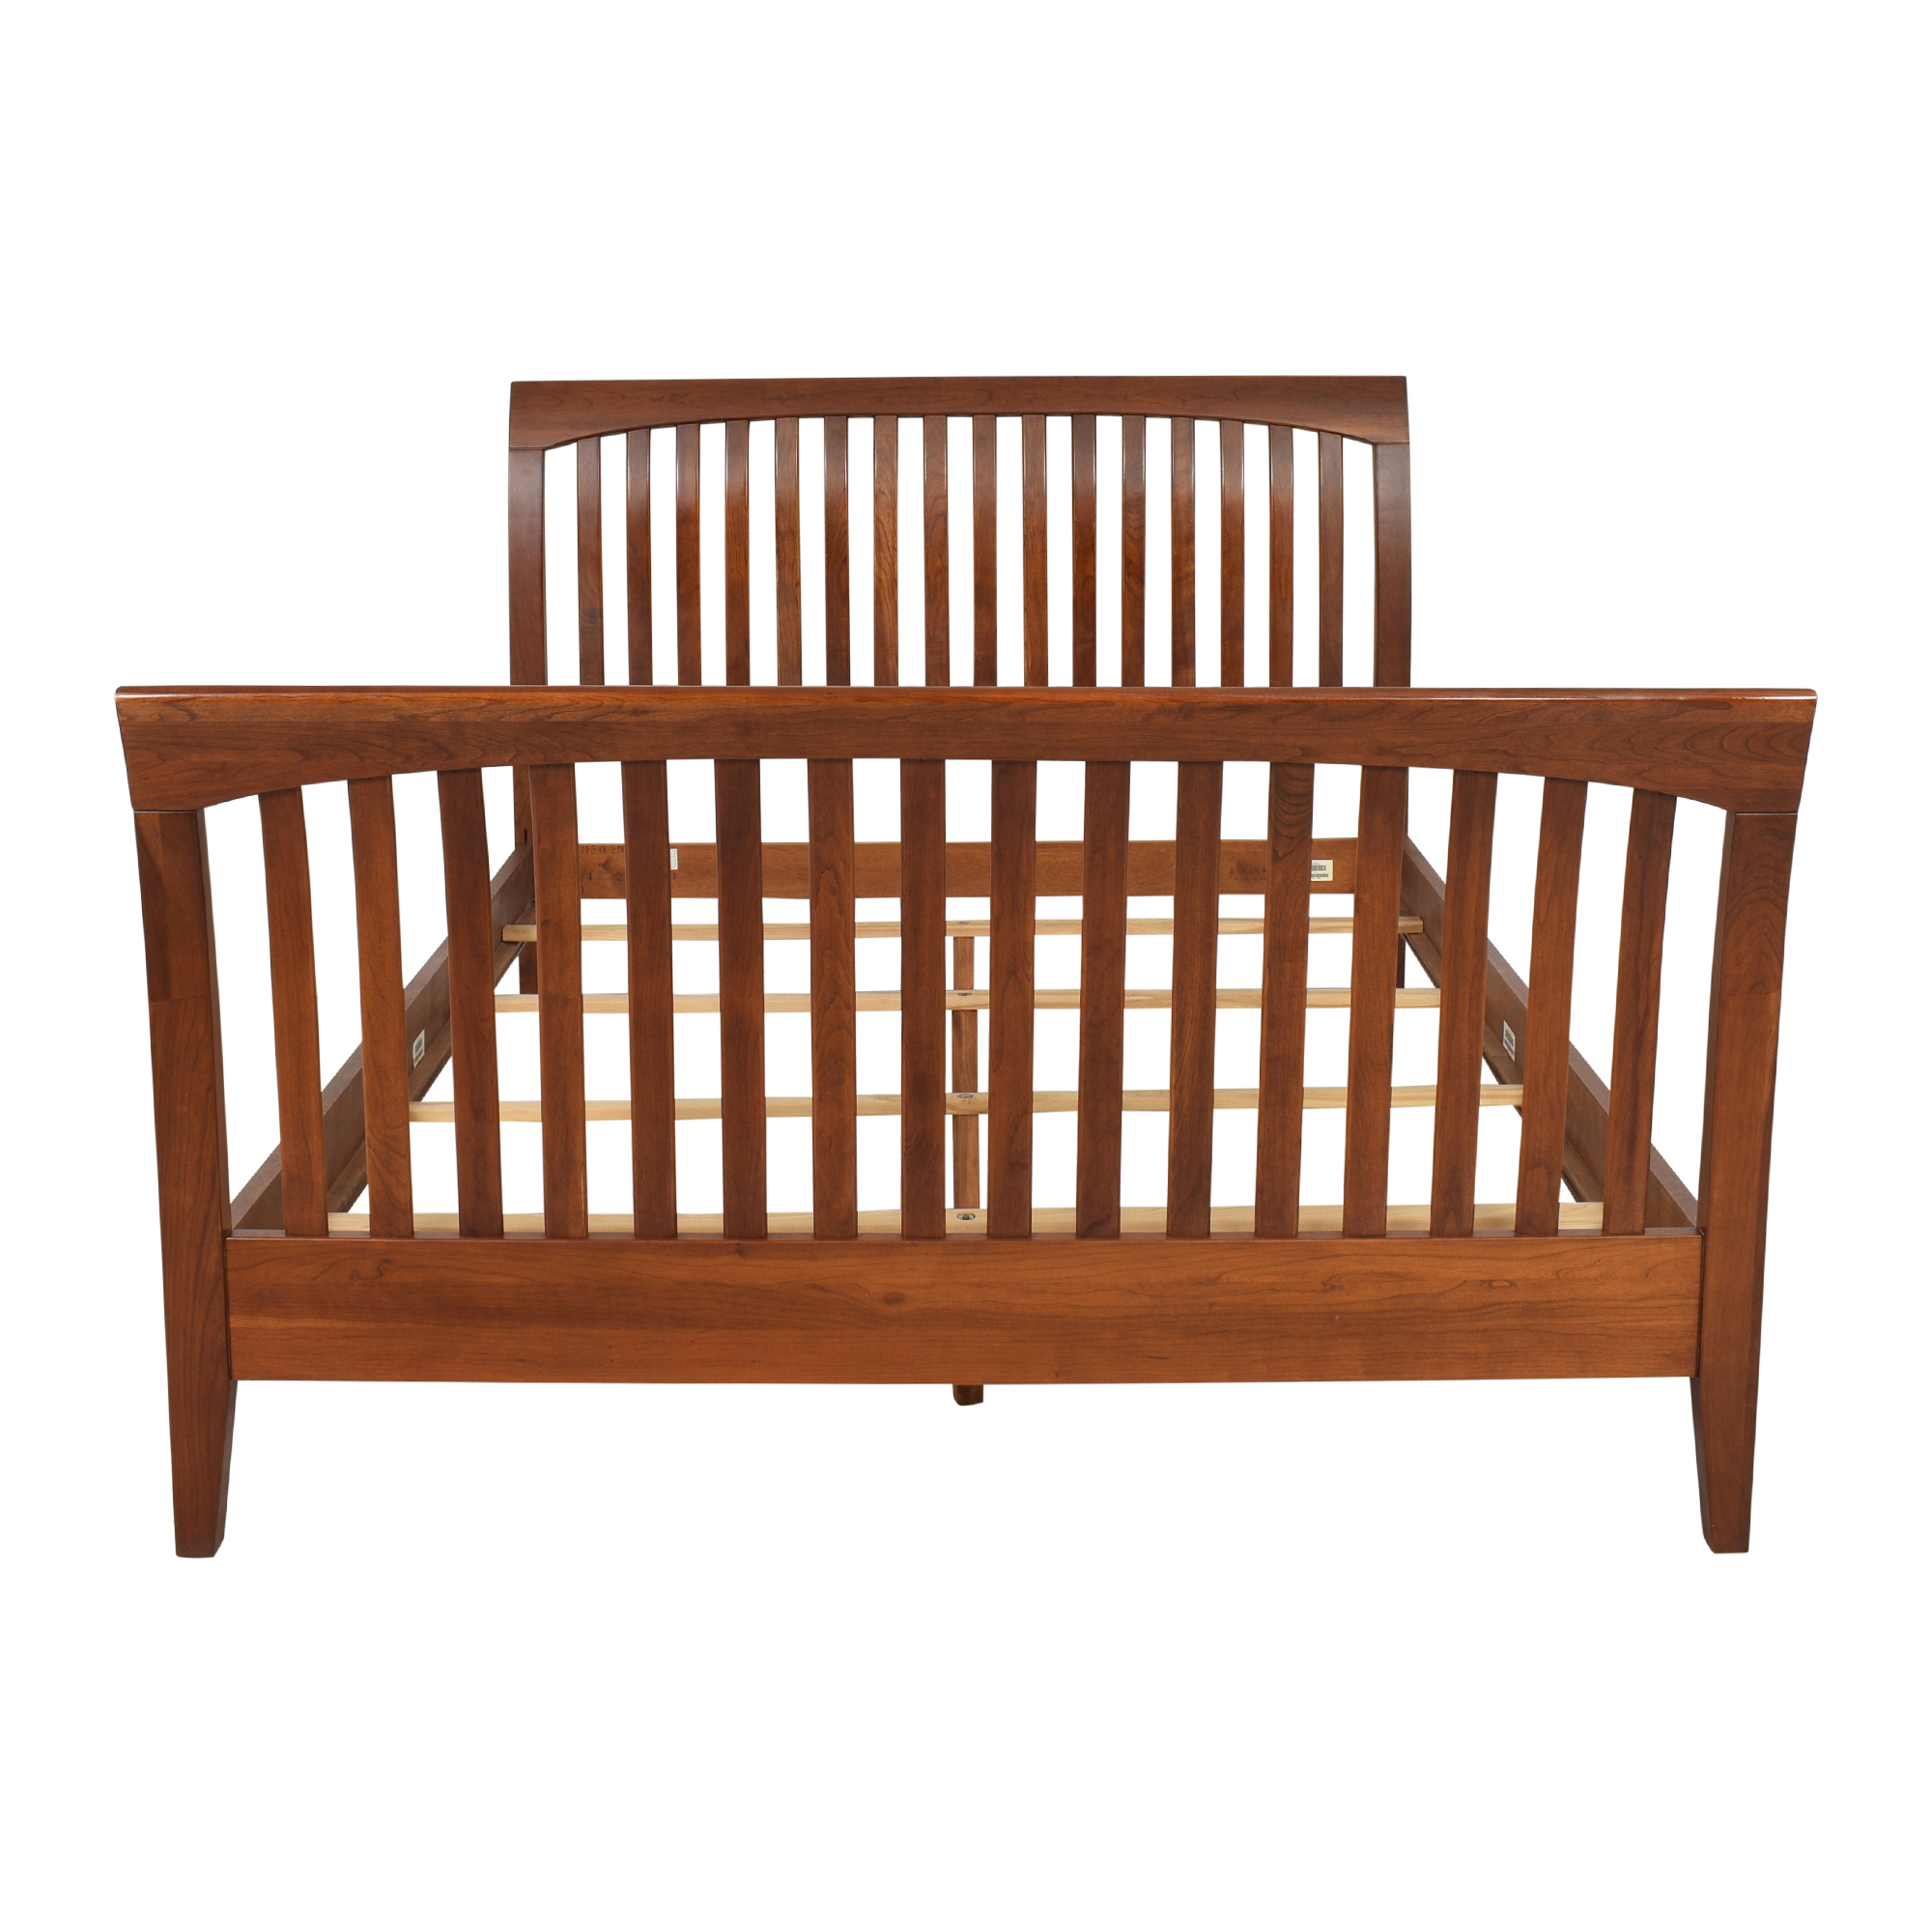 Ethan Allen Ethan Allen American Impressions Queen Sleigh Bed Frame for sale